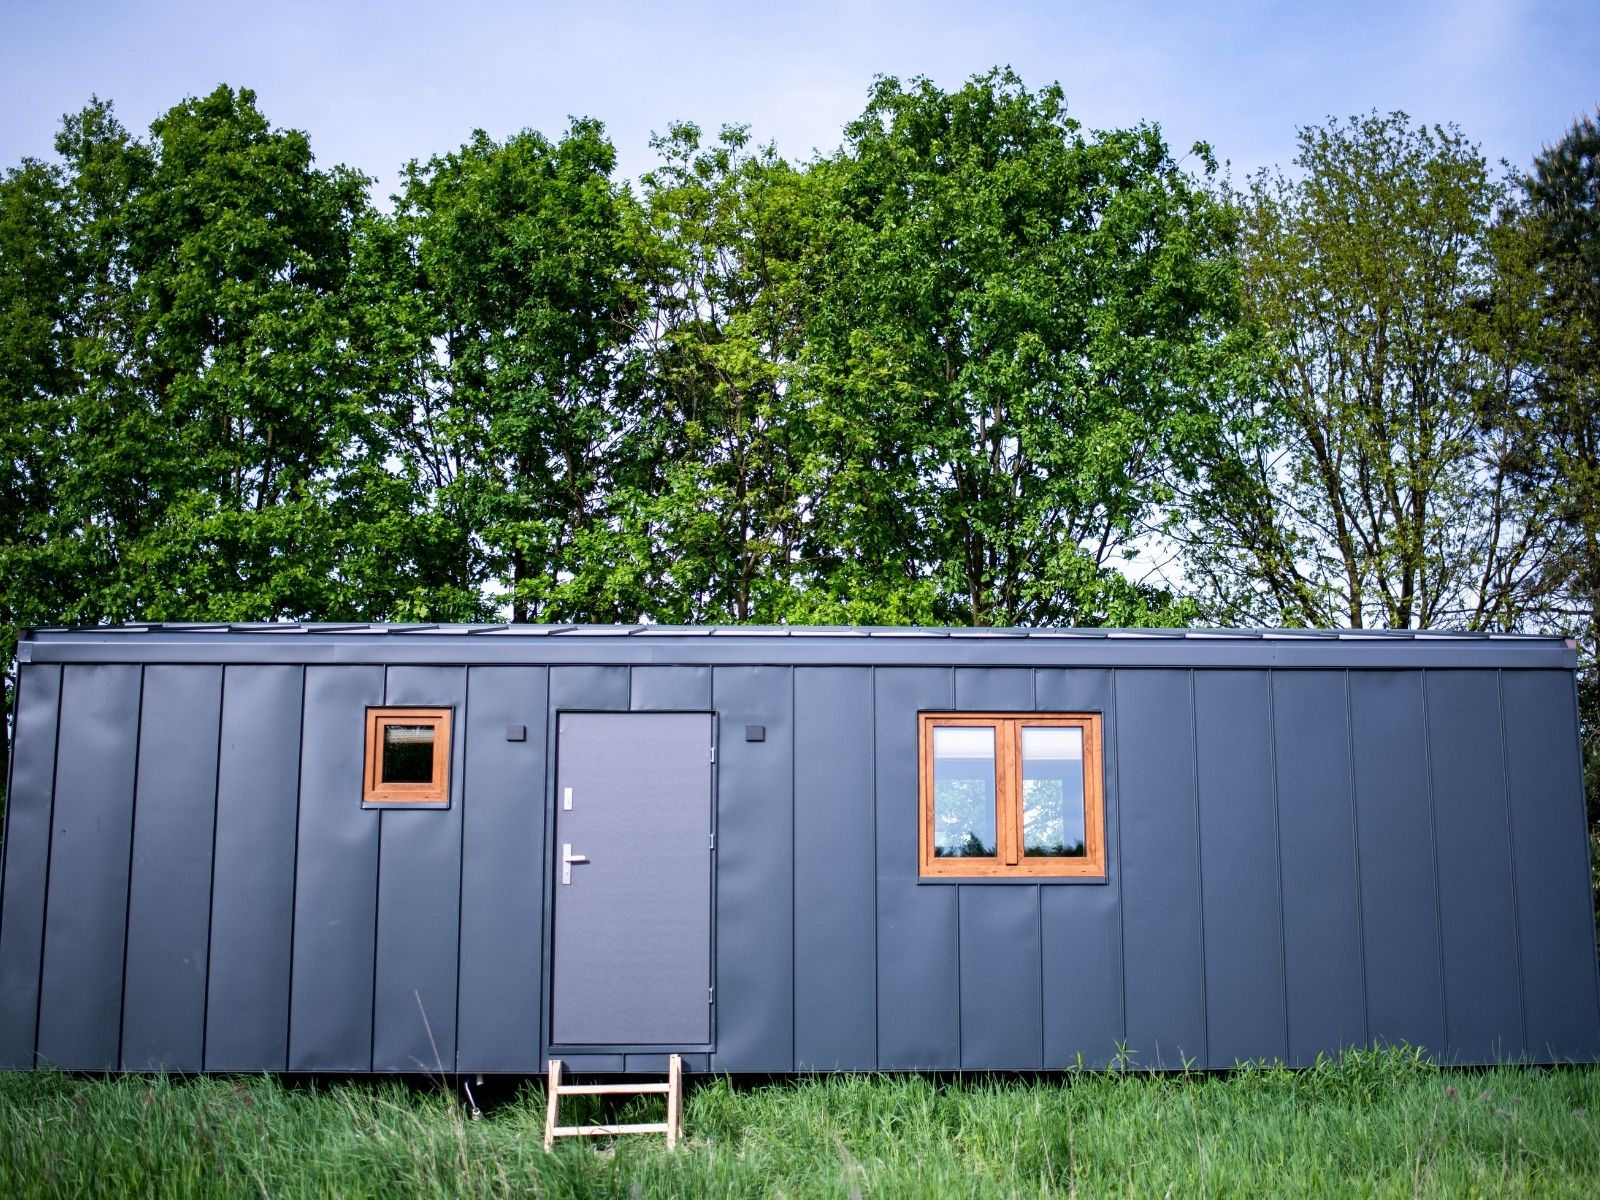 JPJ Mobile House - Producent domów mobilnych (33)